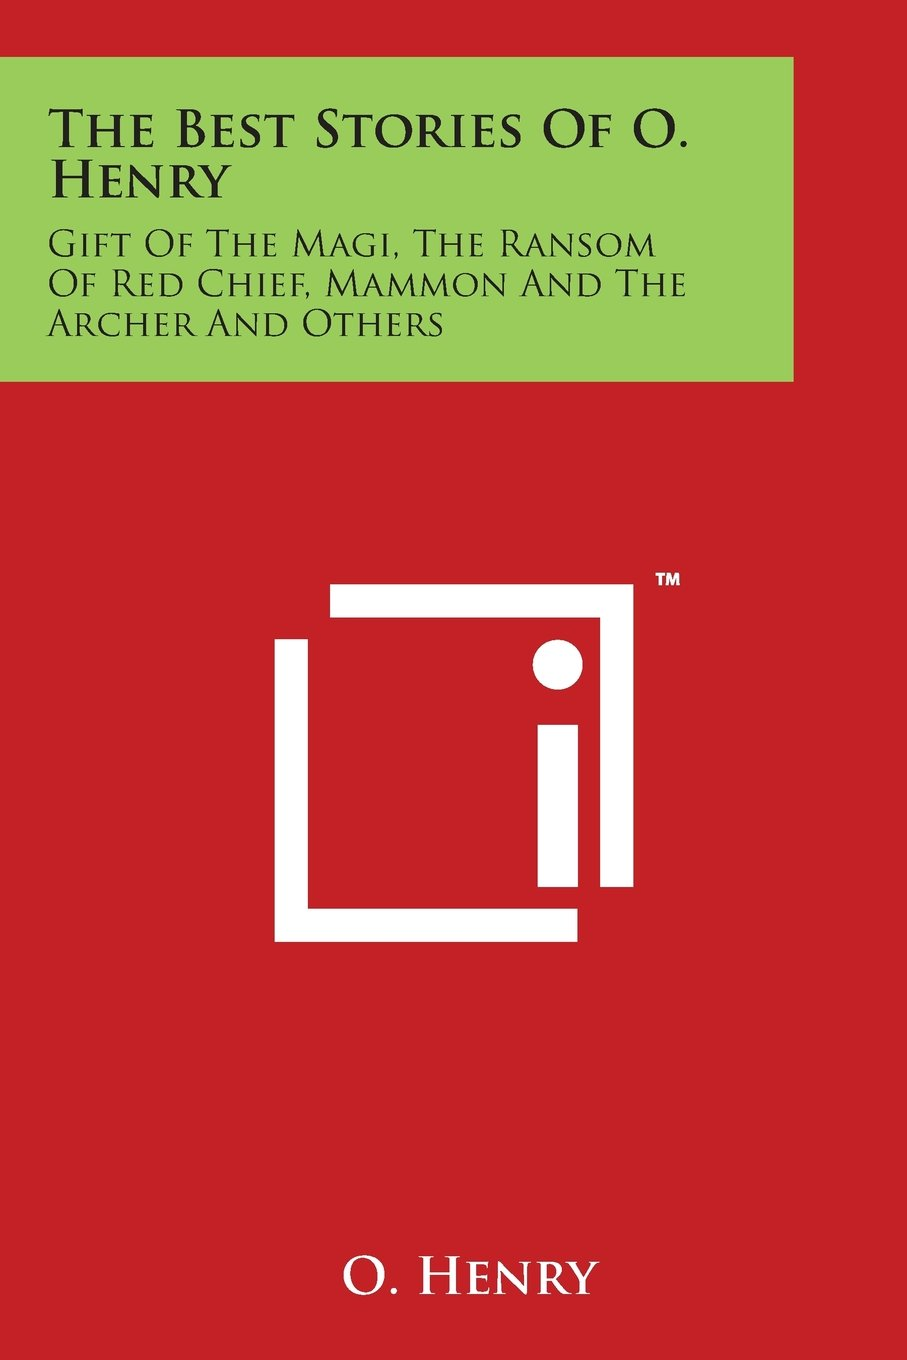 Download The Best Stories of O. Henry: Gift of the Magi, the Ransom of Red Chief, Mammon and the Archer and Others PDF